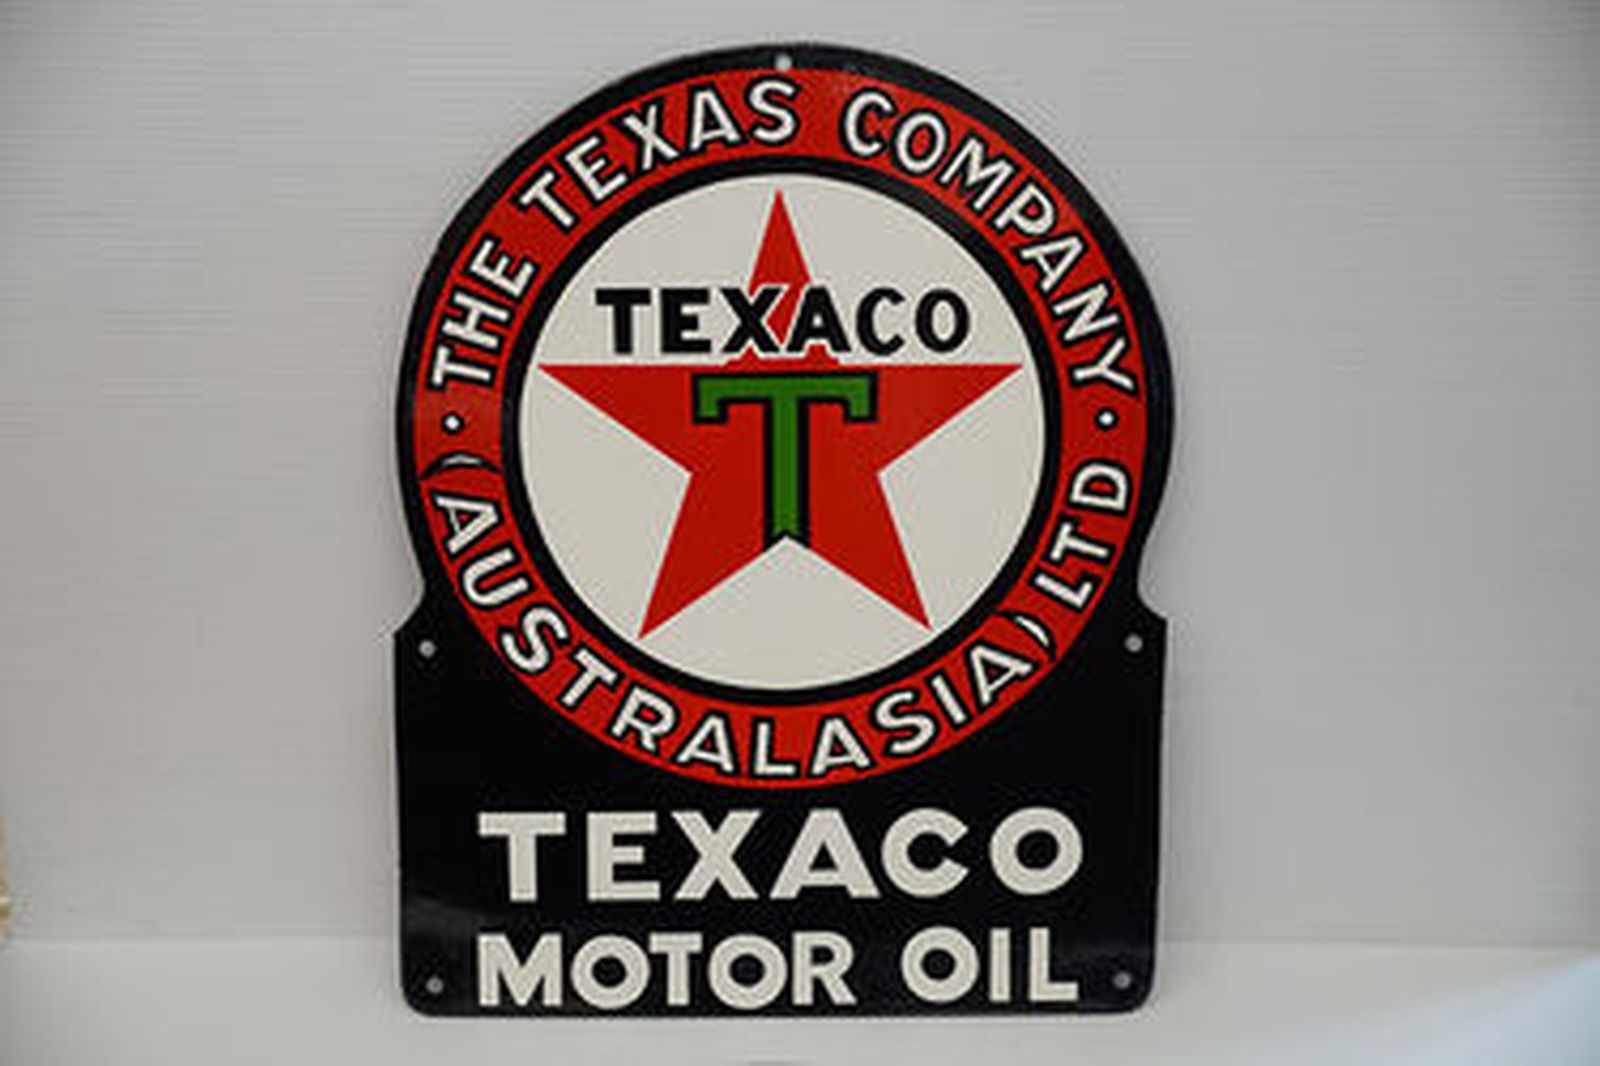 Sold enamel signs texaco motor oil genuine chevrolet parts enamel signs texaco motor oil genuine chevrolet parts reproduction sciox Image collections